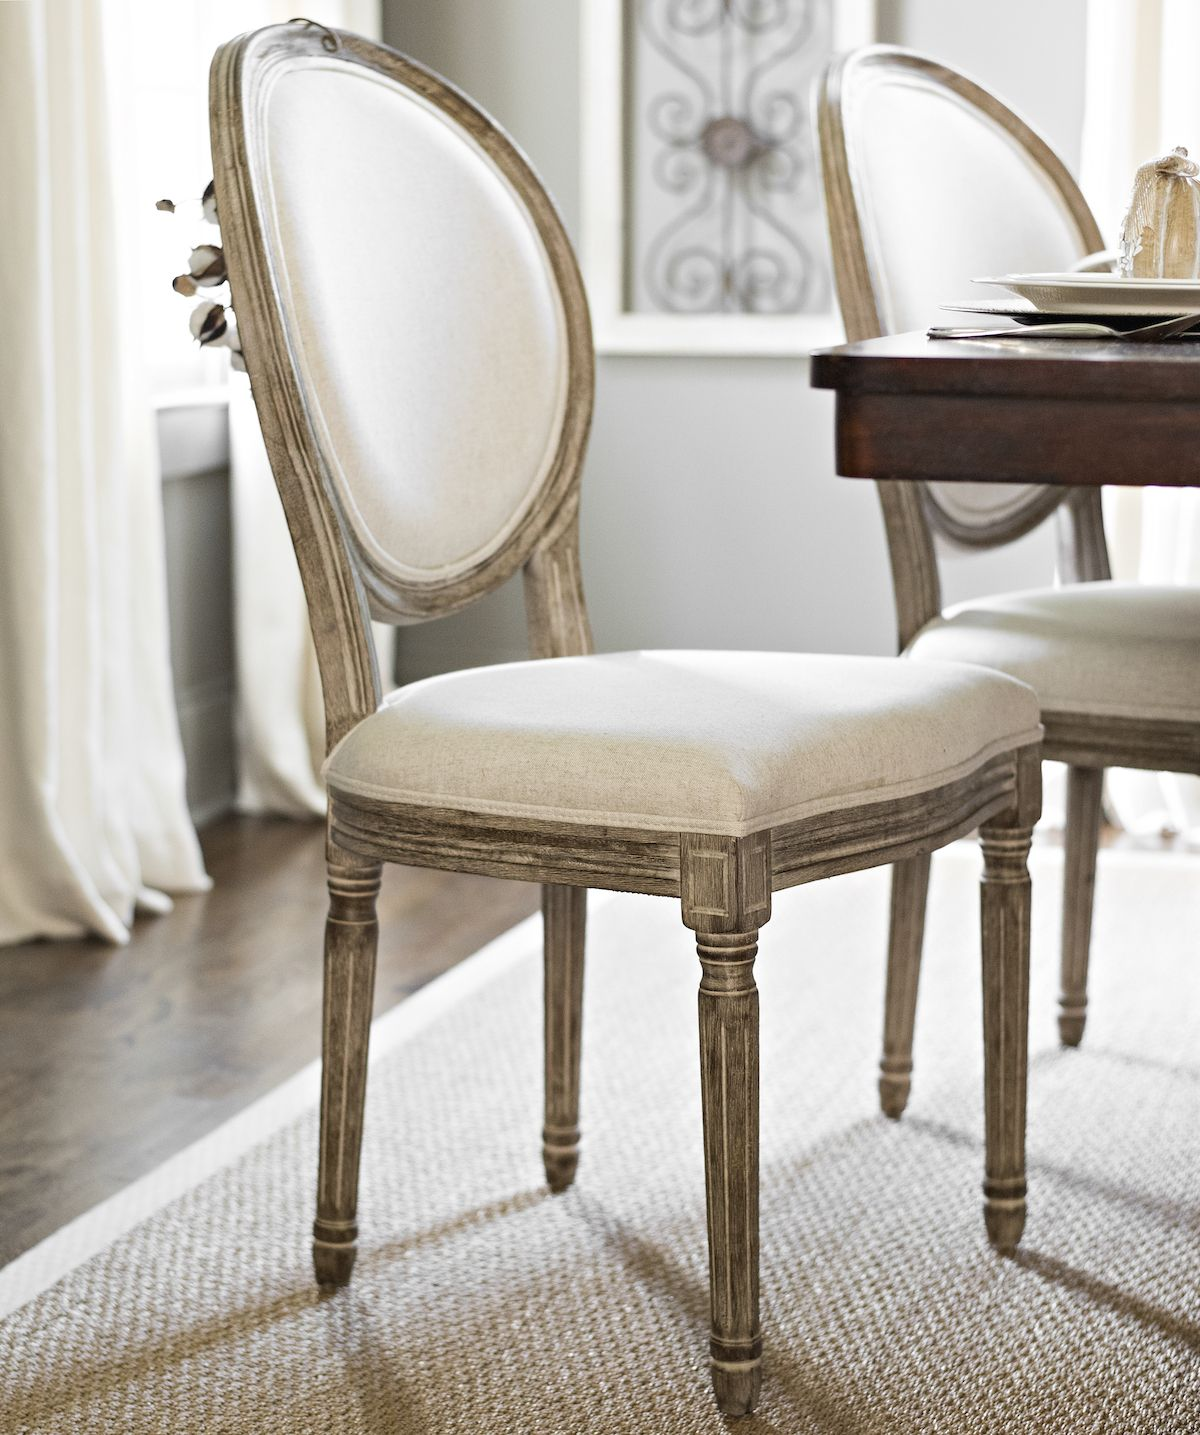 product details ivory louis dining chair hosting and entertainment rh pinterest com